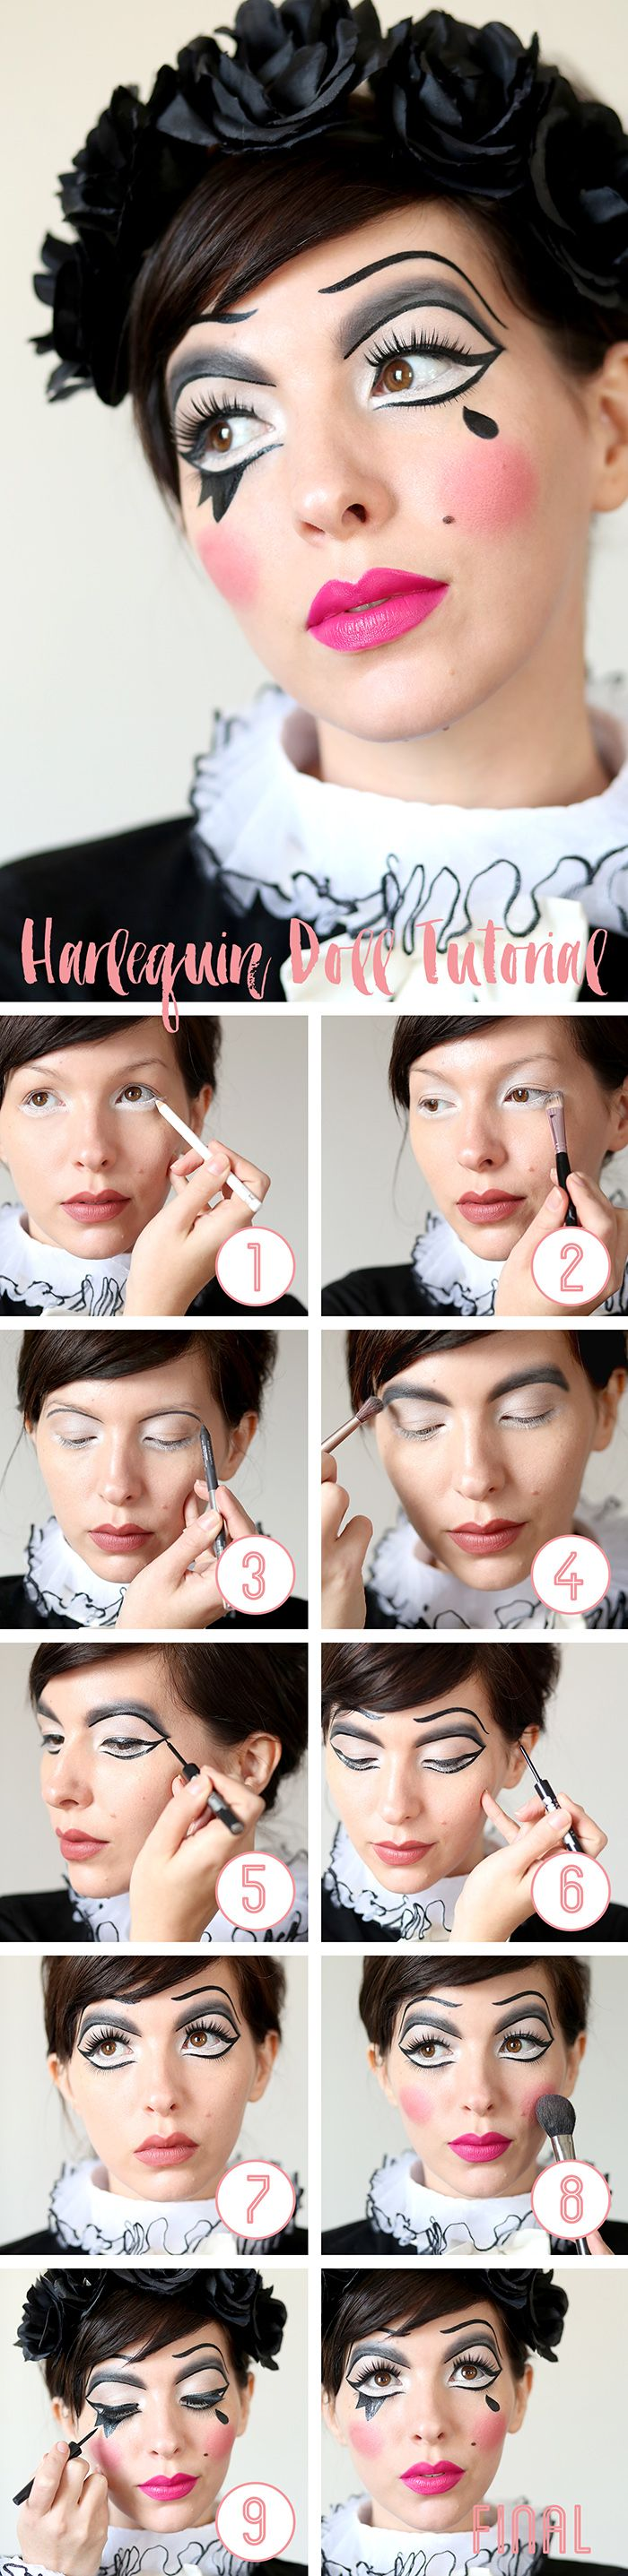 A step by step halloween makeup tutorial on how to create a harlequin doll look.